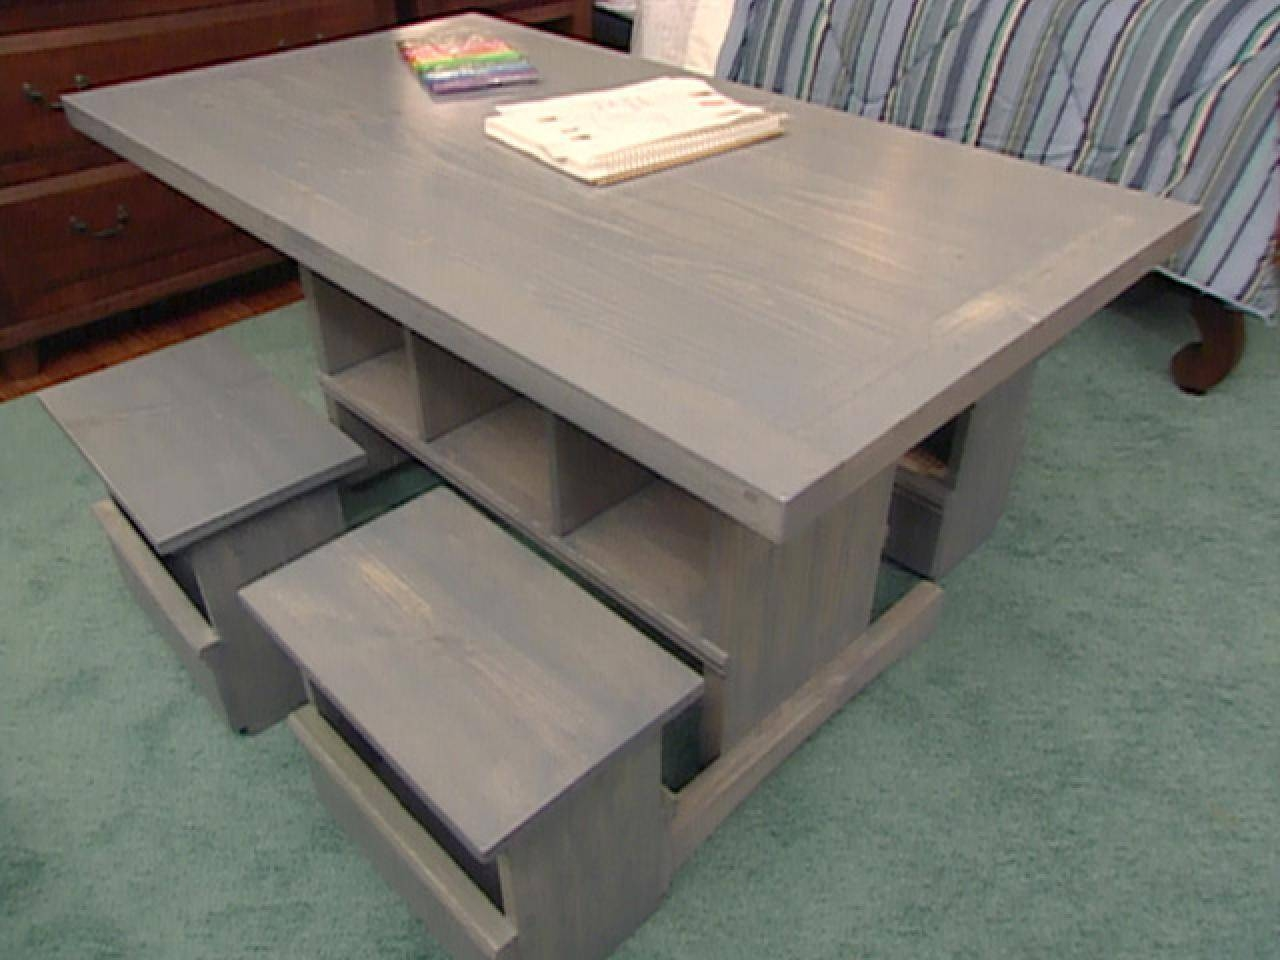 How To Build Child-Sized Table And Stools | Hgtv with regard to Kids Coffee Tables (Image 13 of 30)